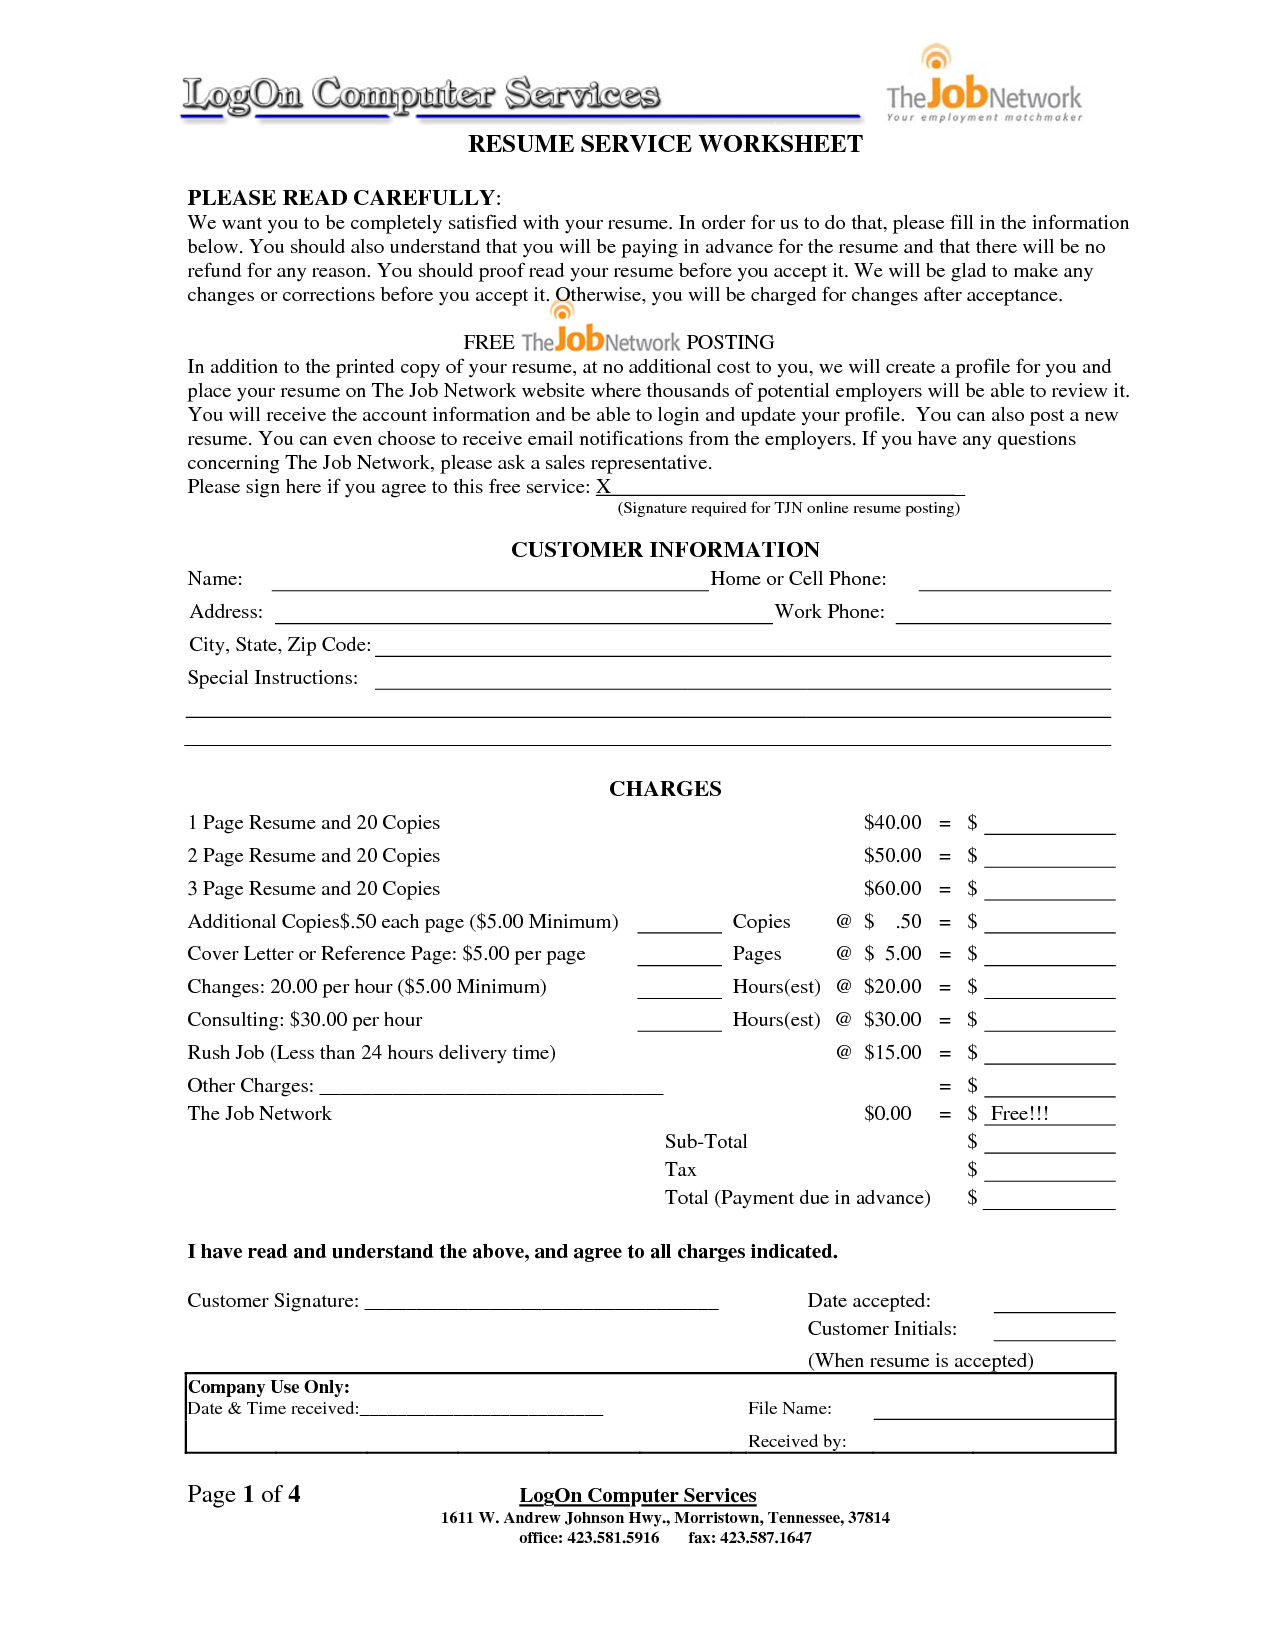 building a resume worksheet service resume building a resume worksheet resume writing worksheet uw green bay resume worksheet printable resume worksheet and